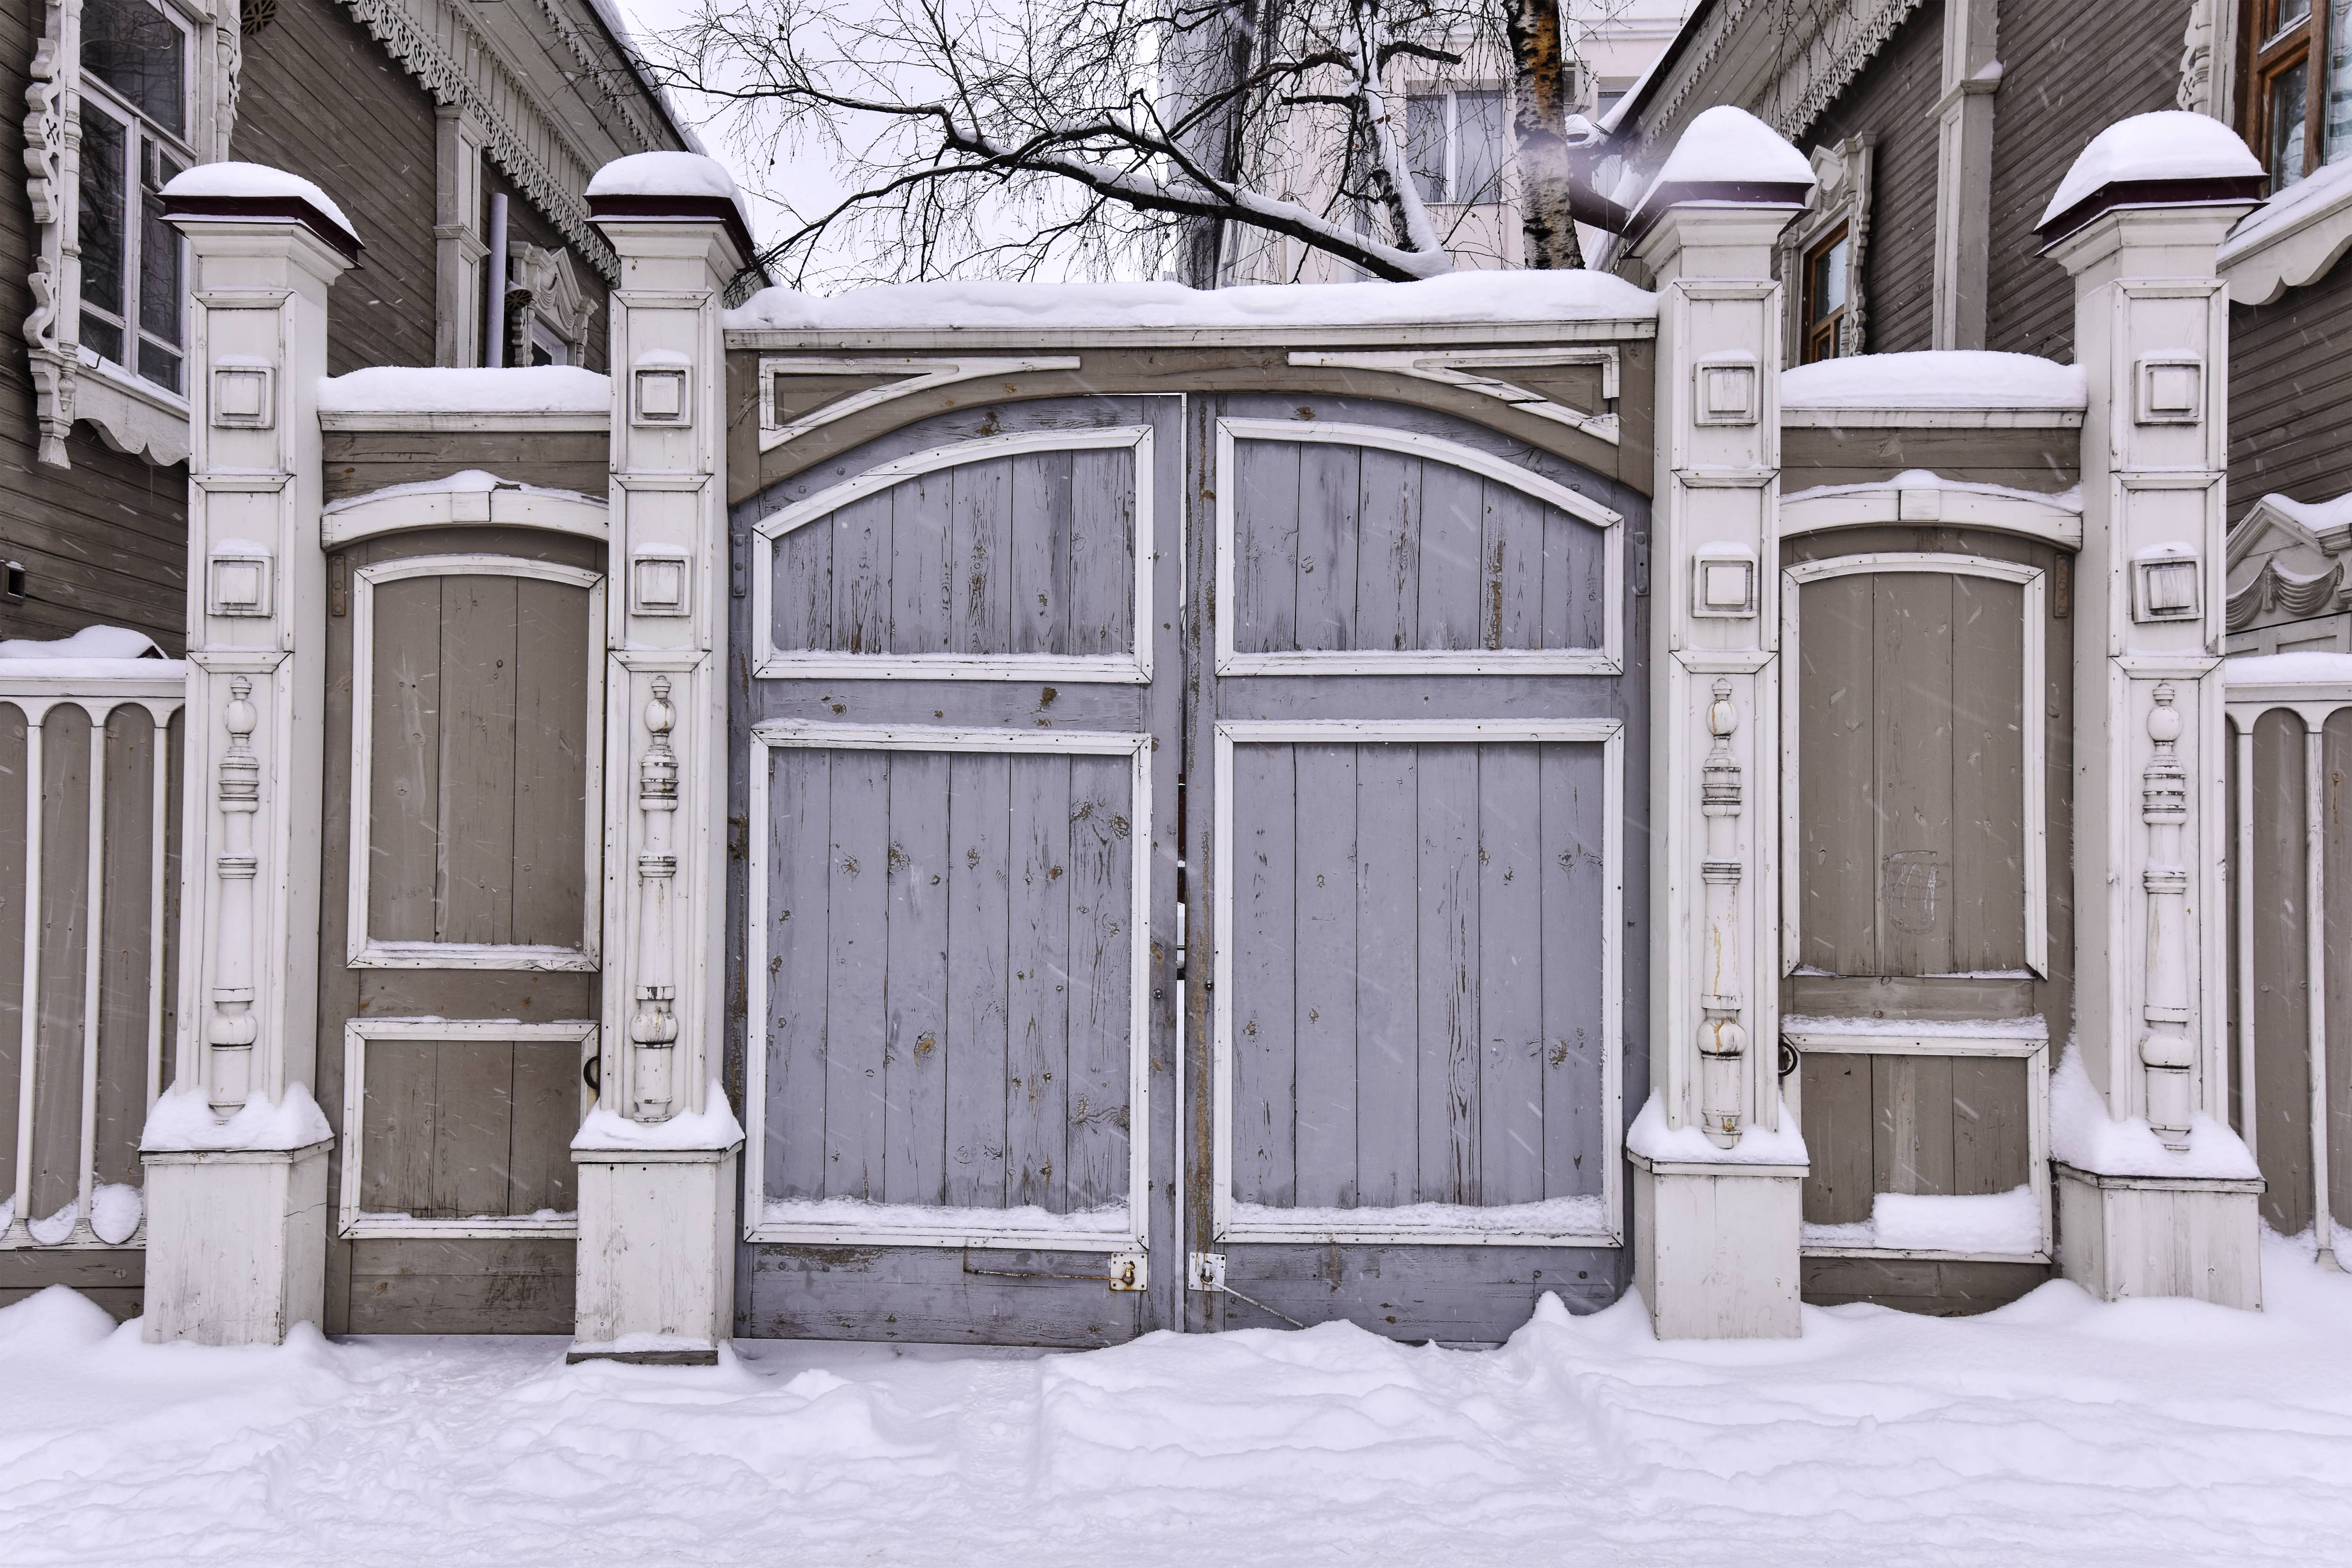 How To Protect Gated Communities During The Holidays